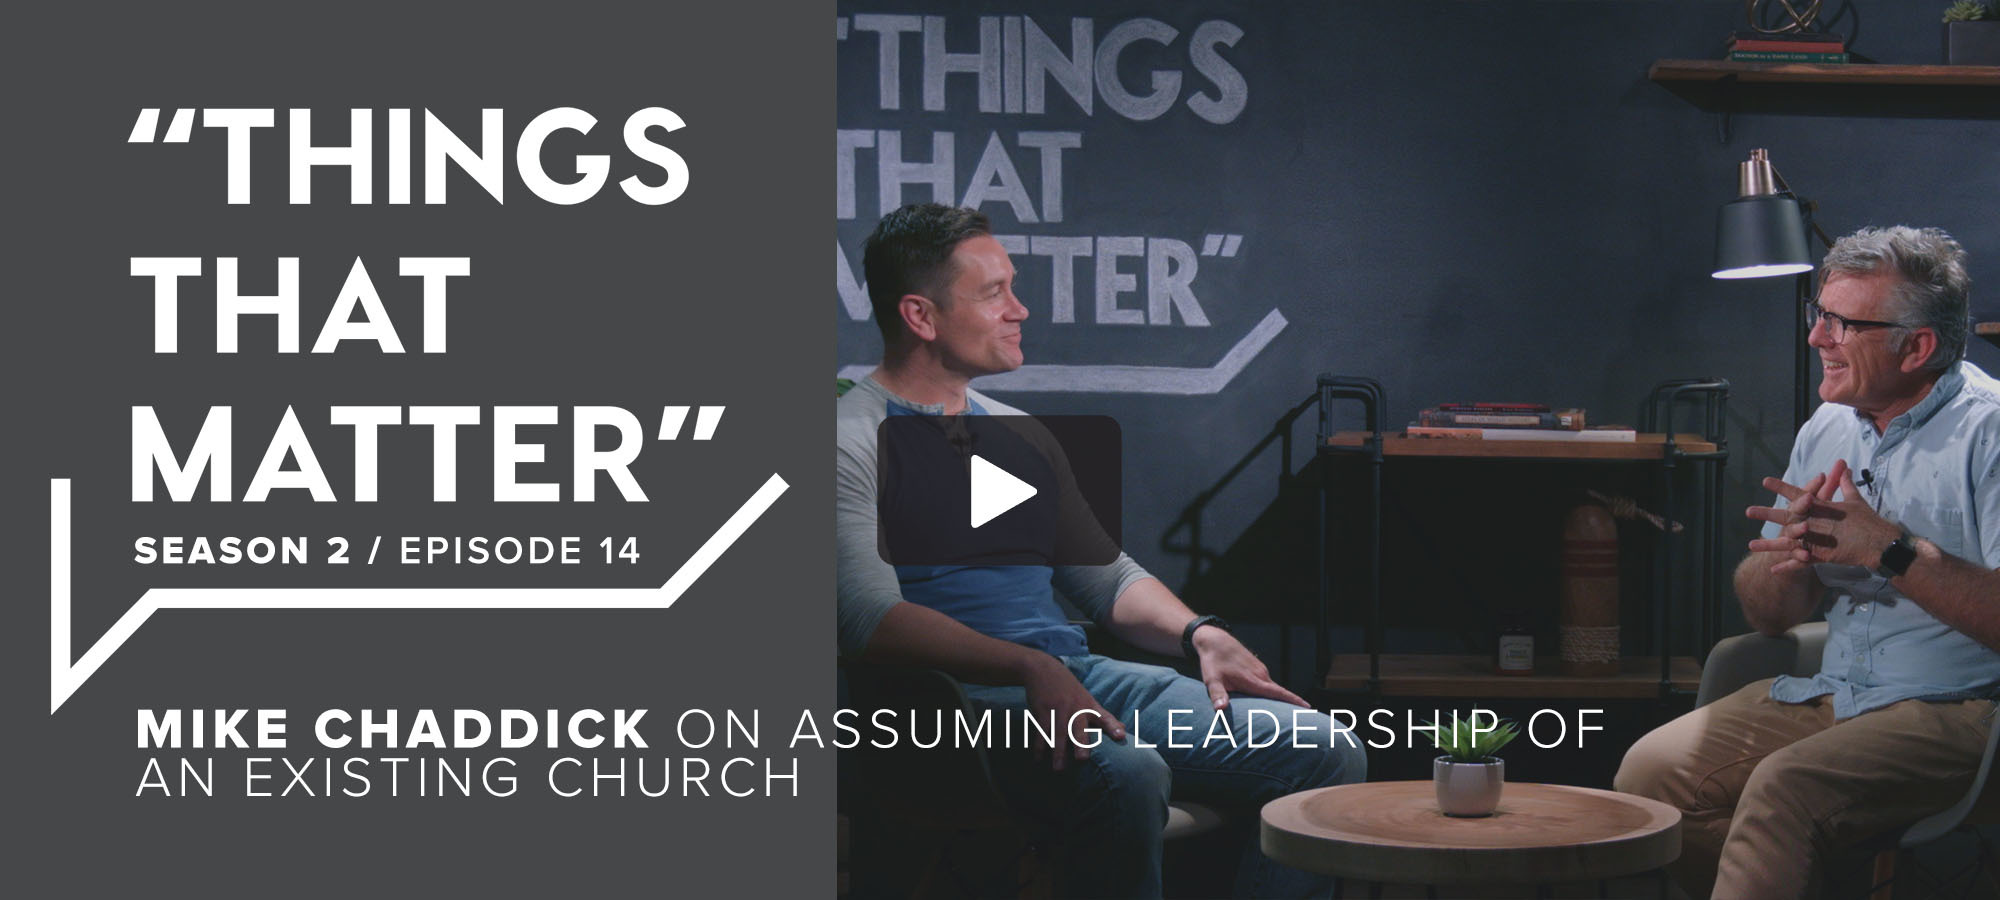 TTM S2 E14 - Mike Chaddick on Assuming Leadership of an Existing Church